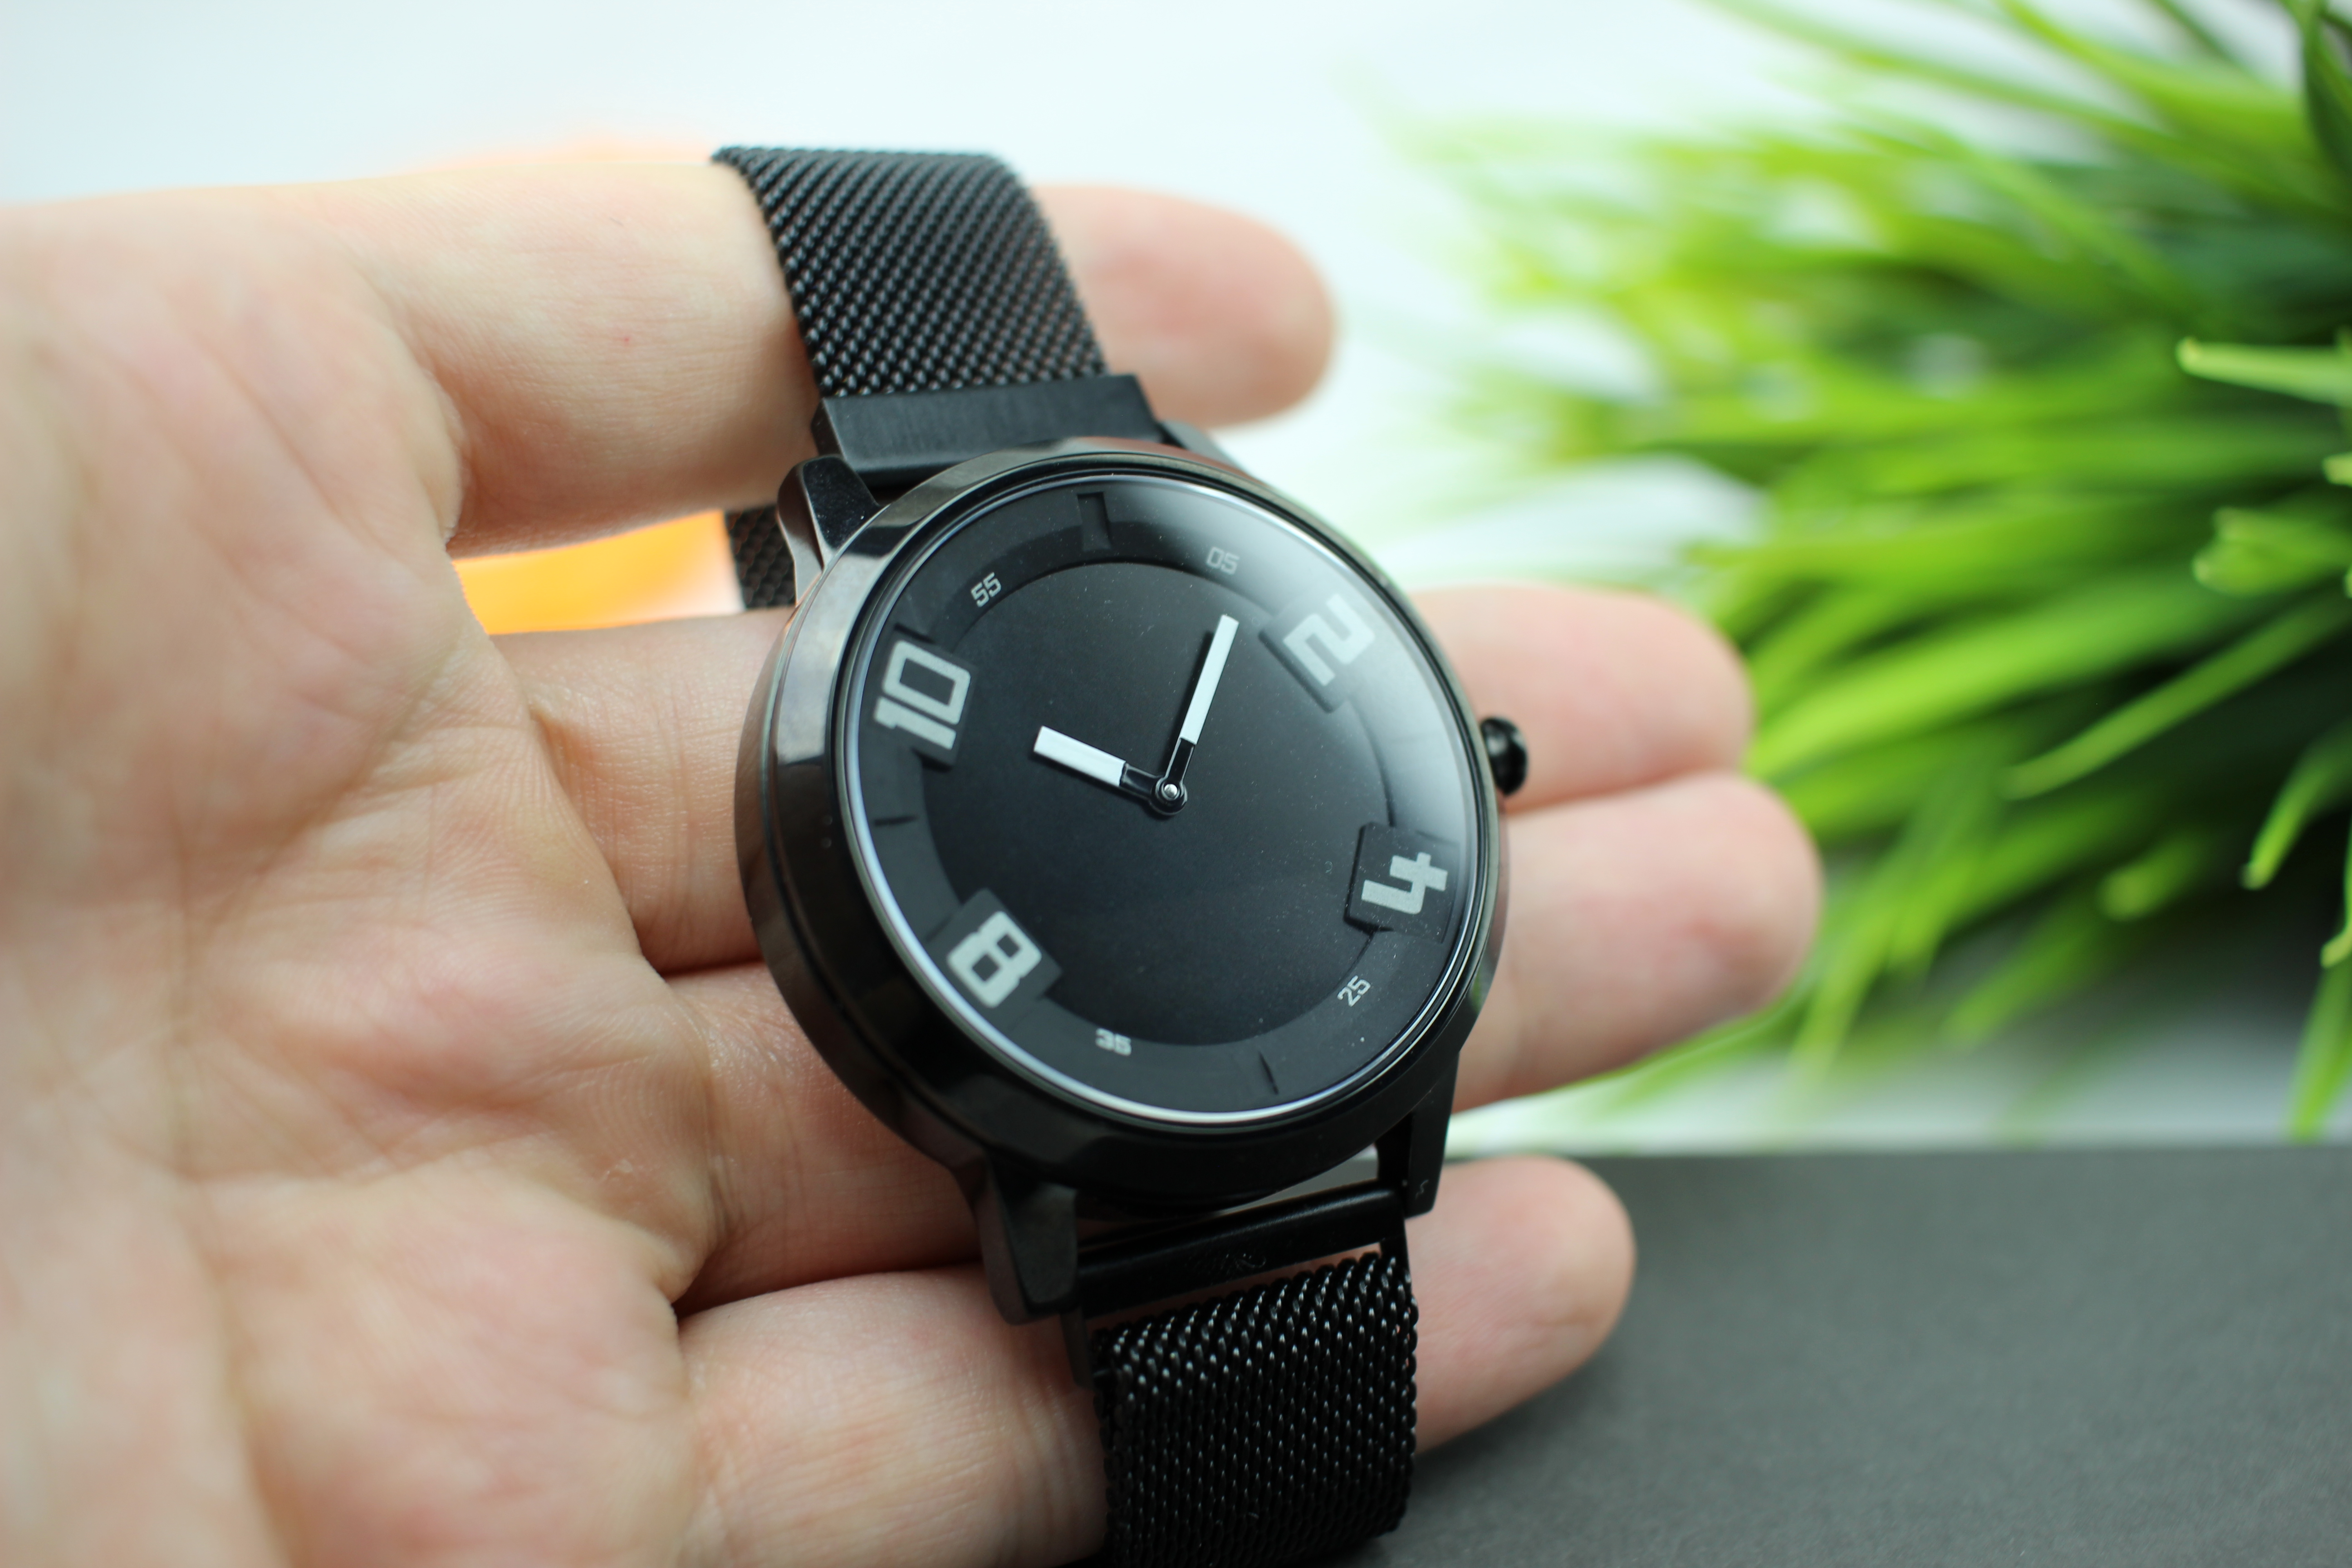 Armbanduhr Mit Temperaturanzeige Lenovo Watch X Und Watch X Plus Smartwatch Hybrid Aus China Im Test